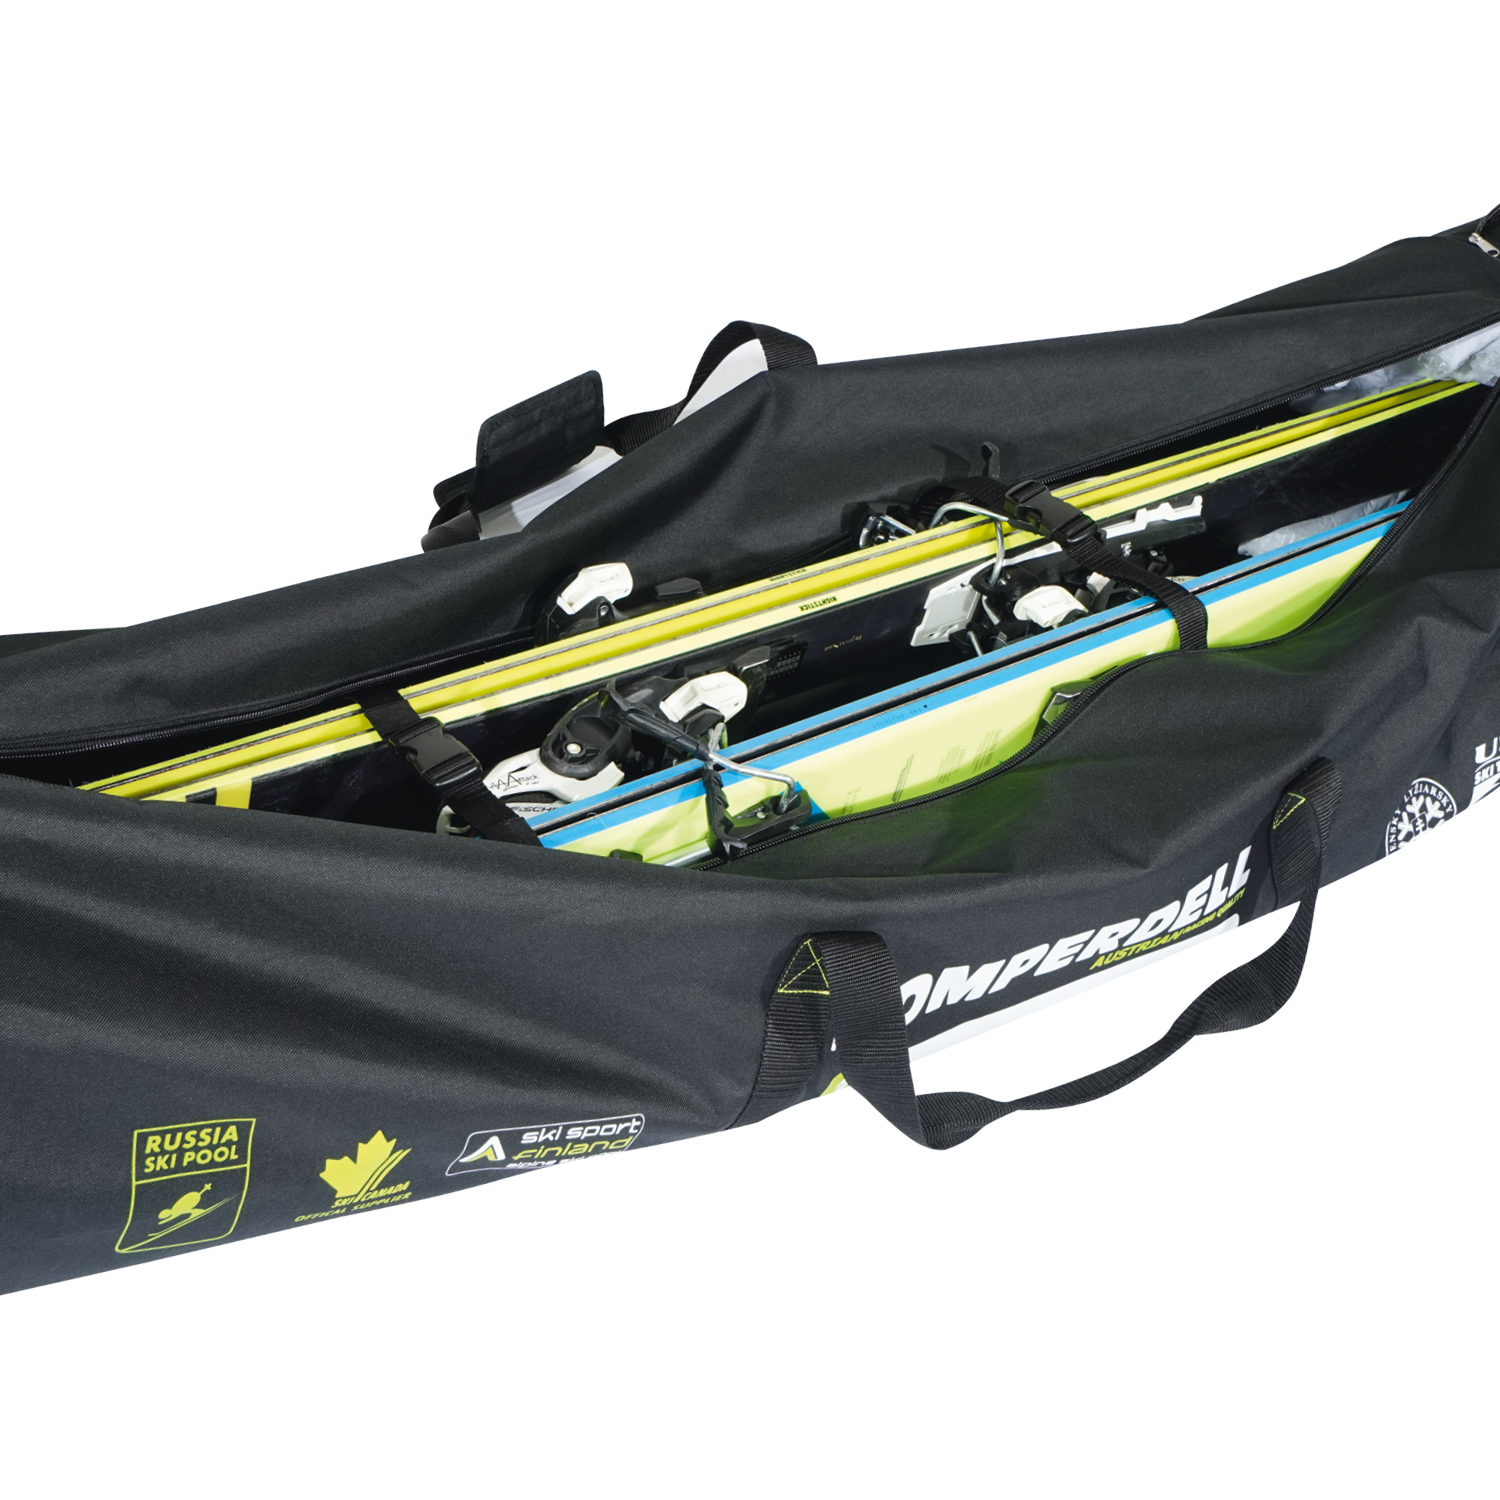 Nationalteam Expandable Pole and Ski Bag with Wheels